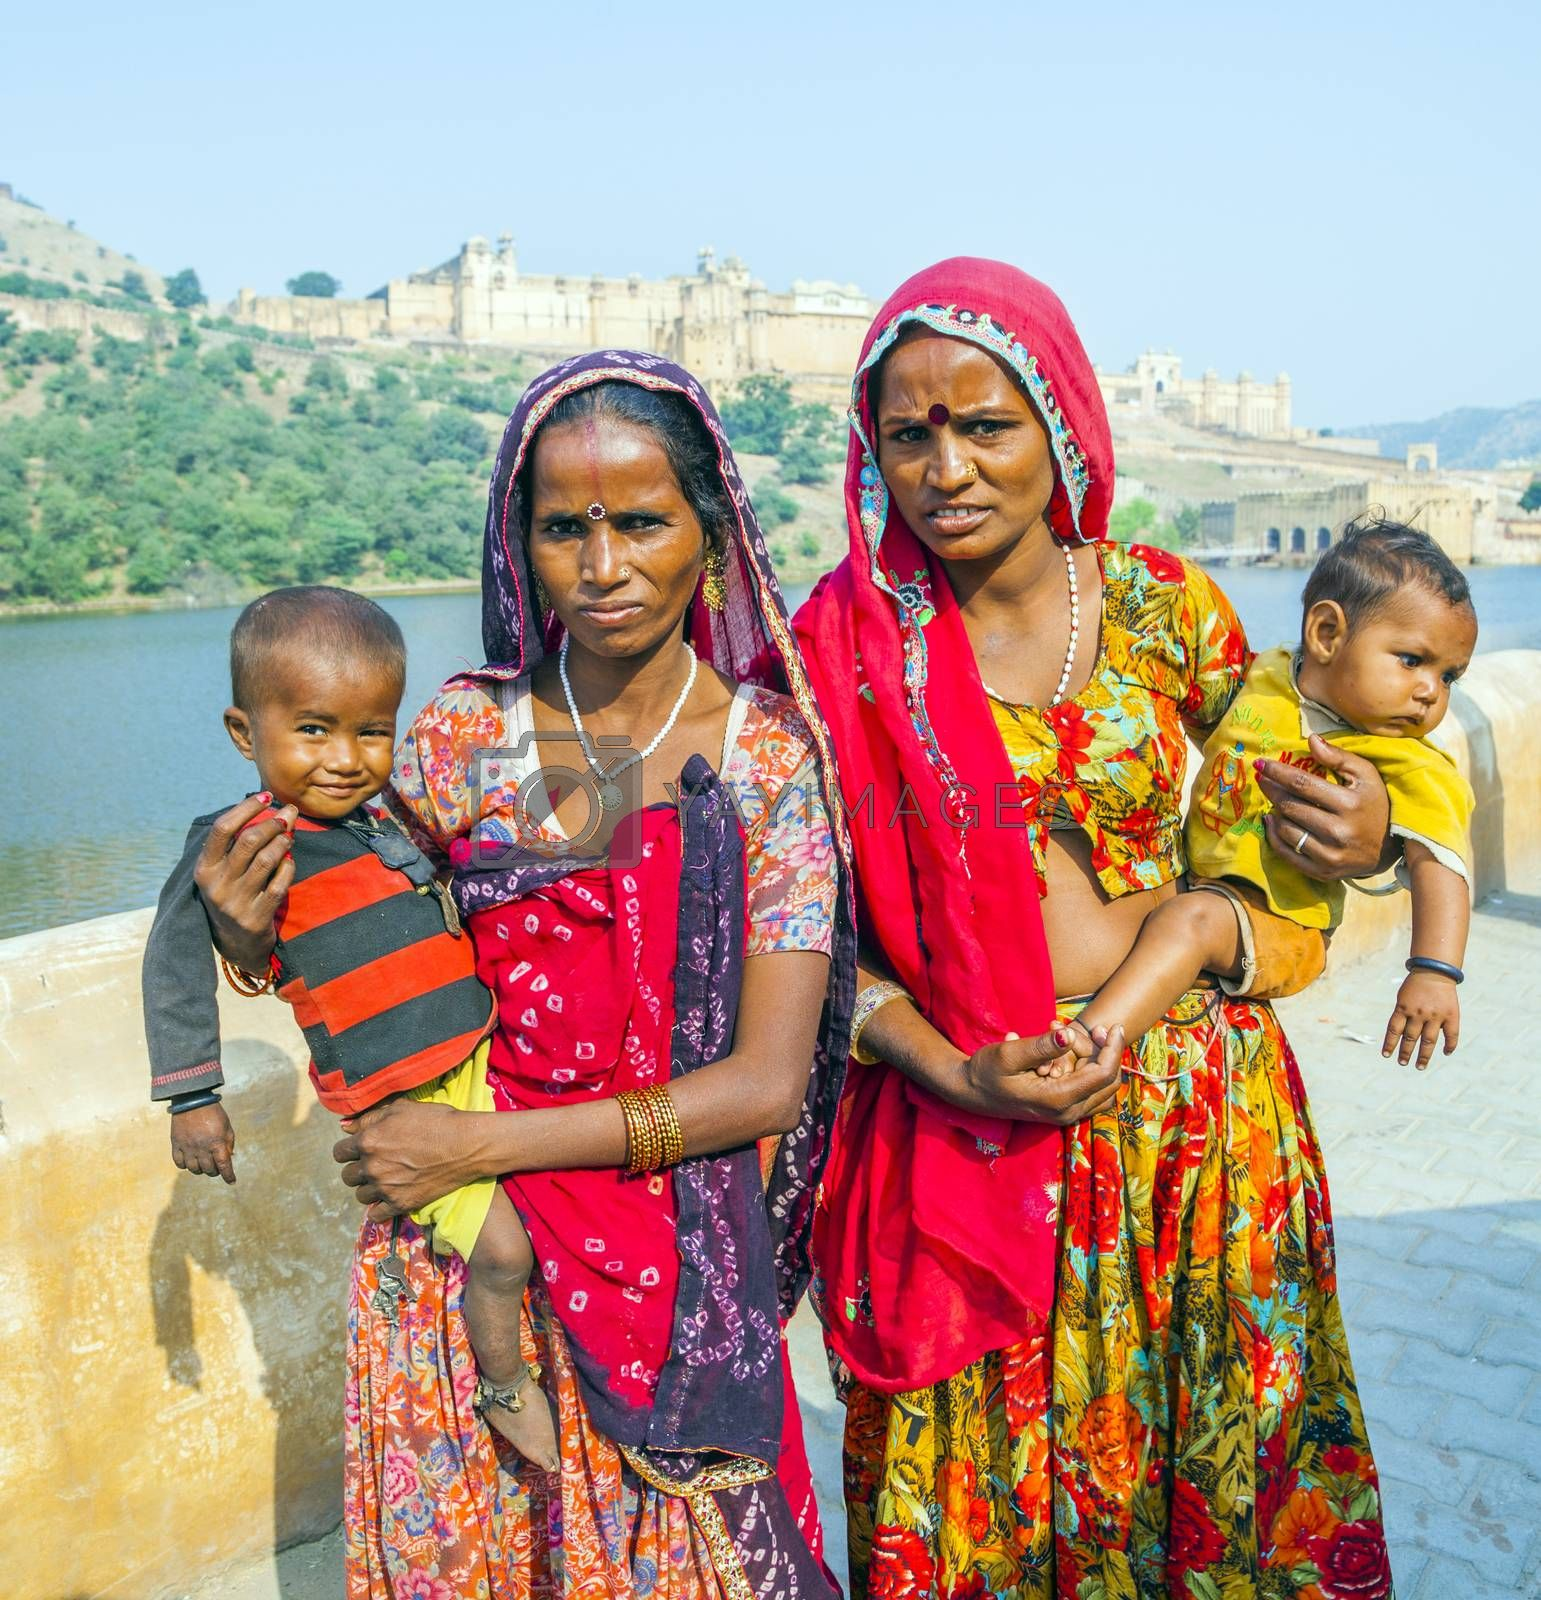 JAIPUR, INDIA - OCTOBER 19, 2012: women beg for money with her 1 year old children in arm in Jaipur, India. Begging with babies is popular at touristic spots.